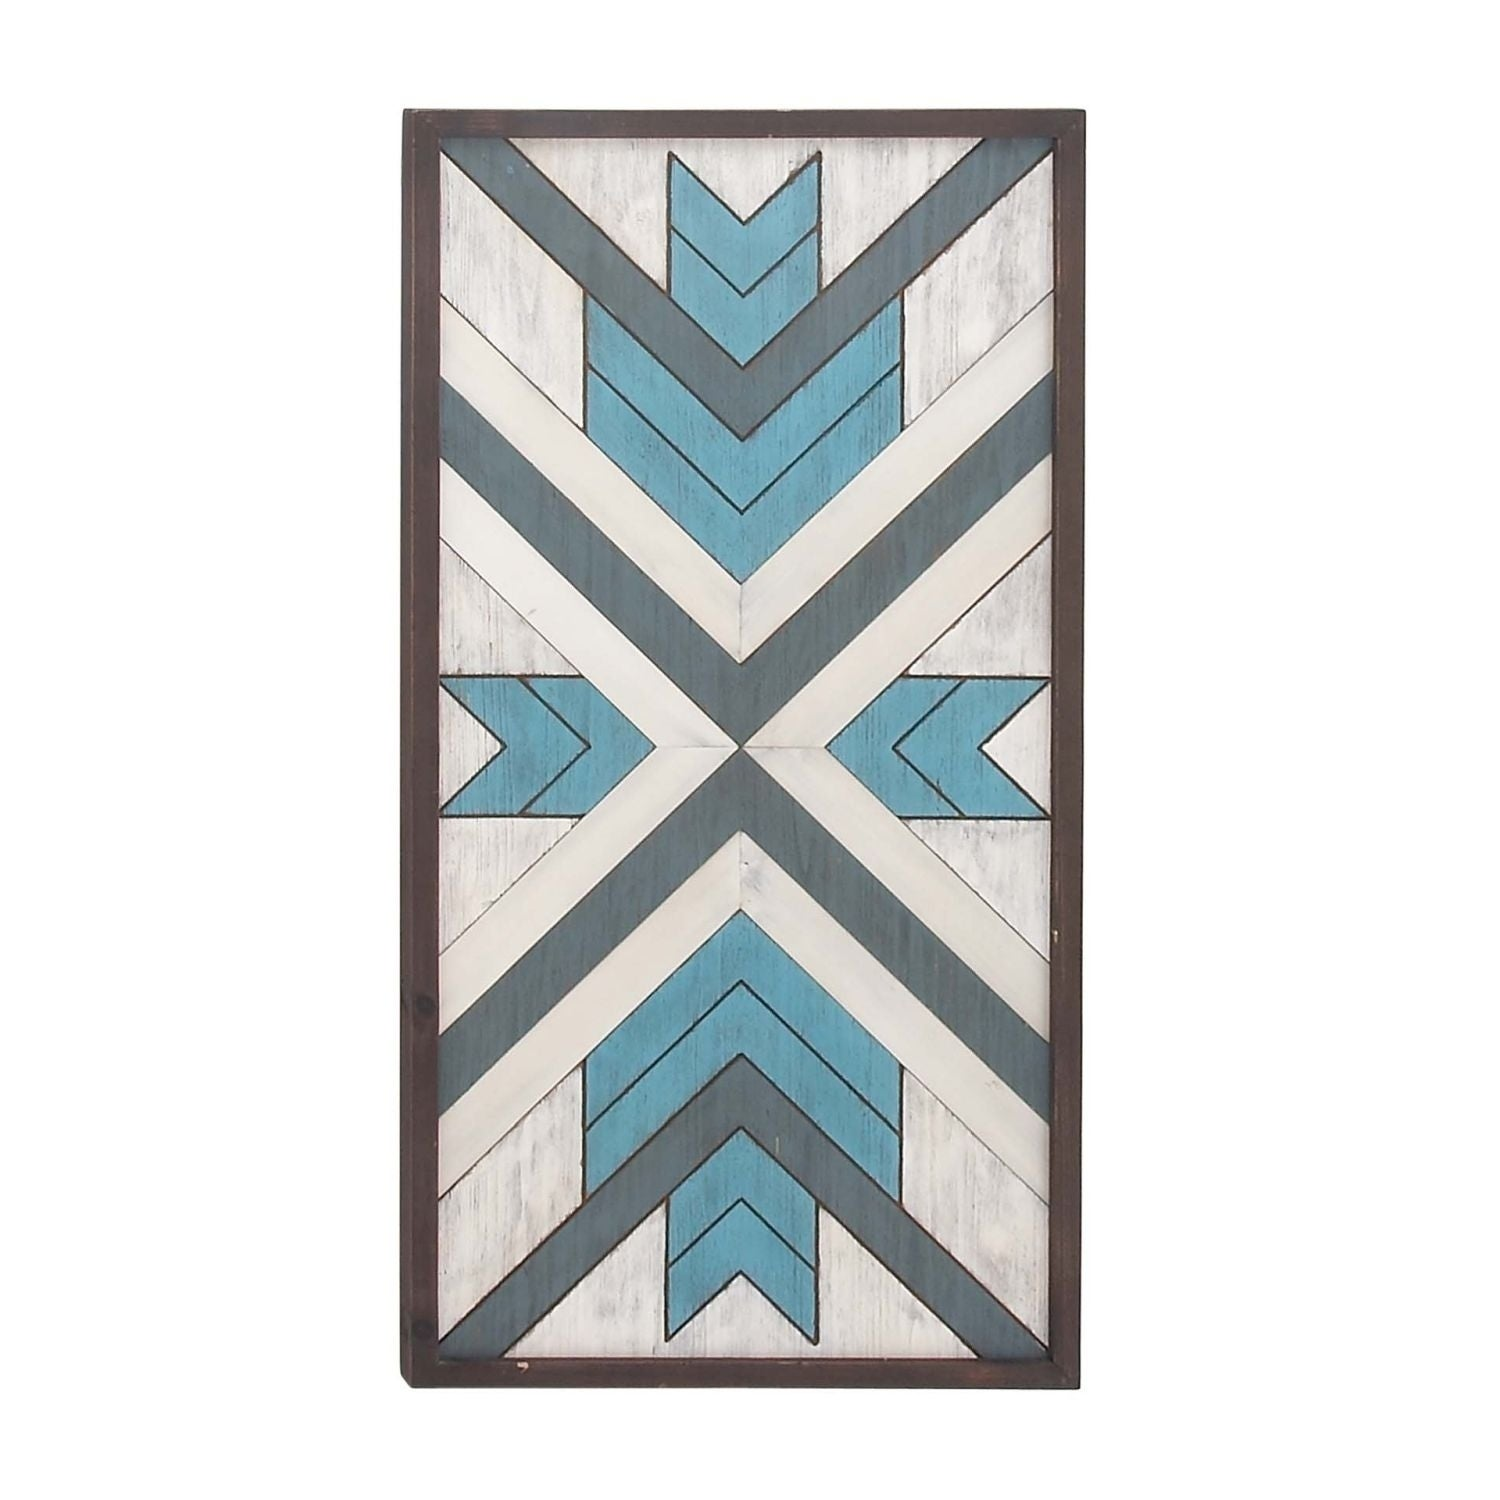 Studio 350 Wood Wall Decor 23 inches wide, 43 inches high...